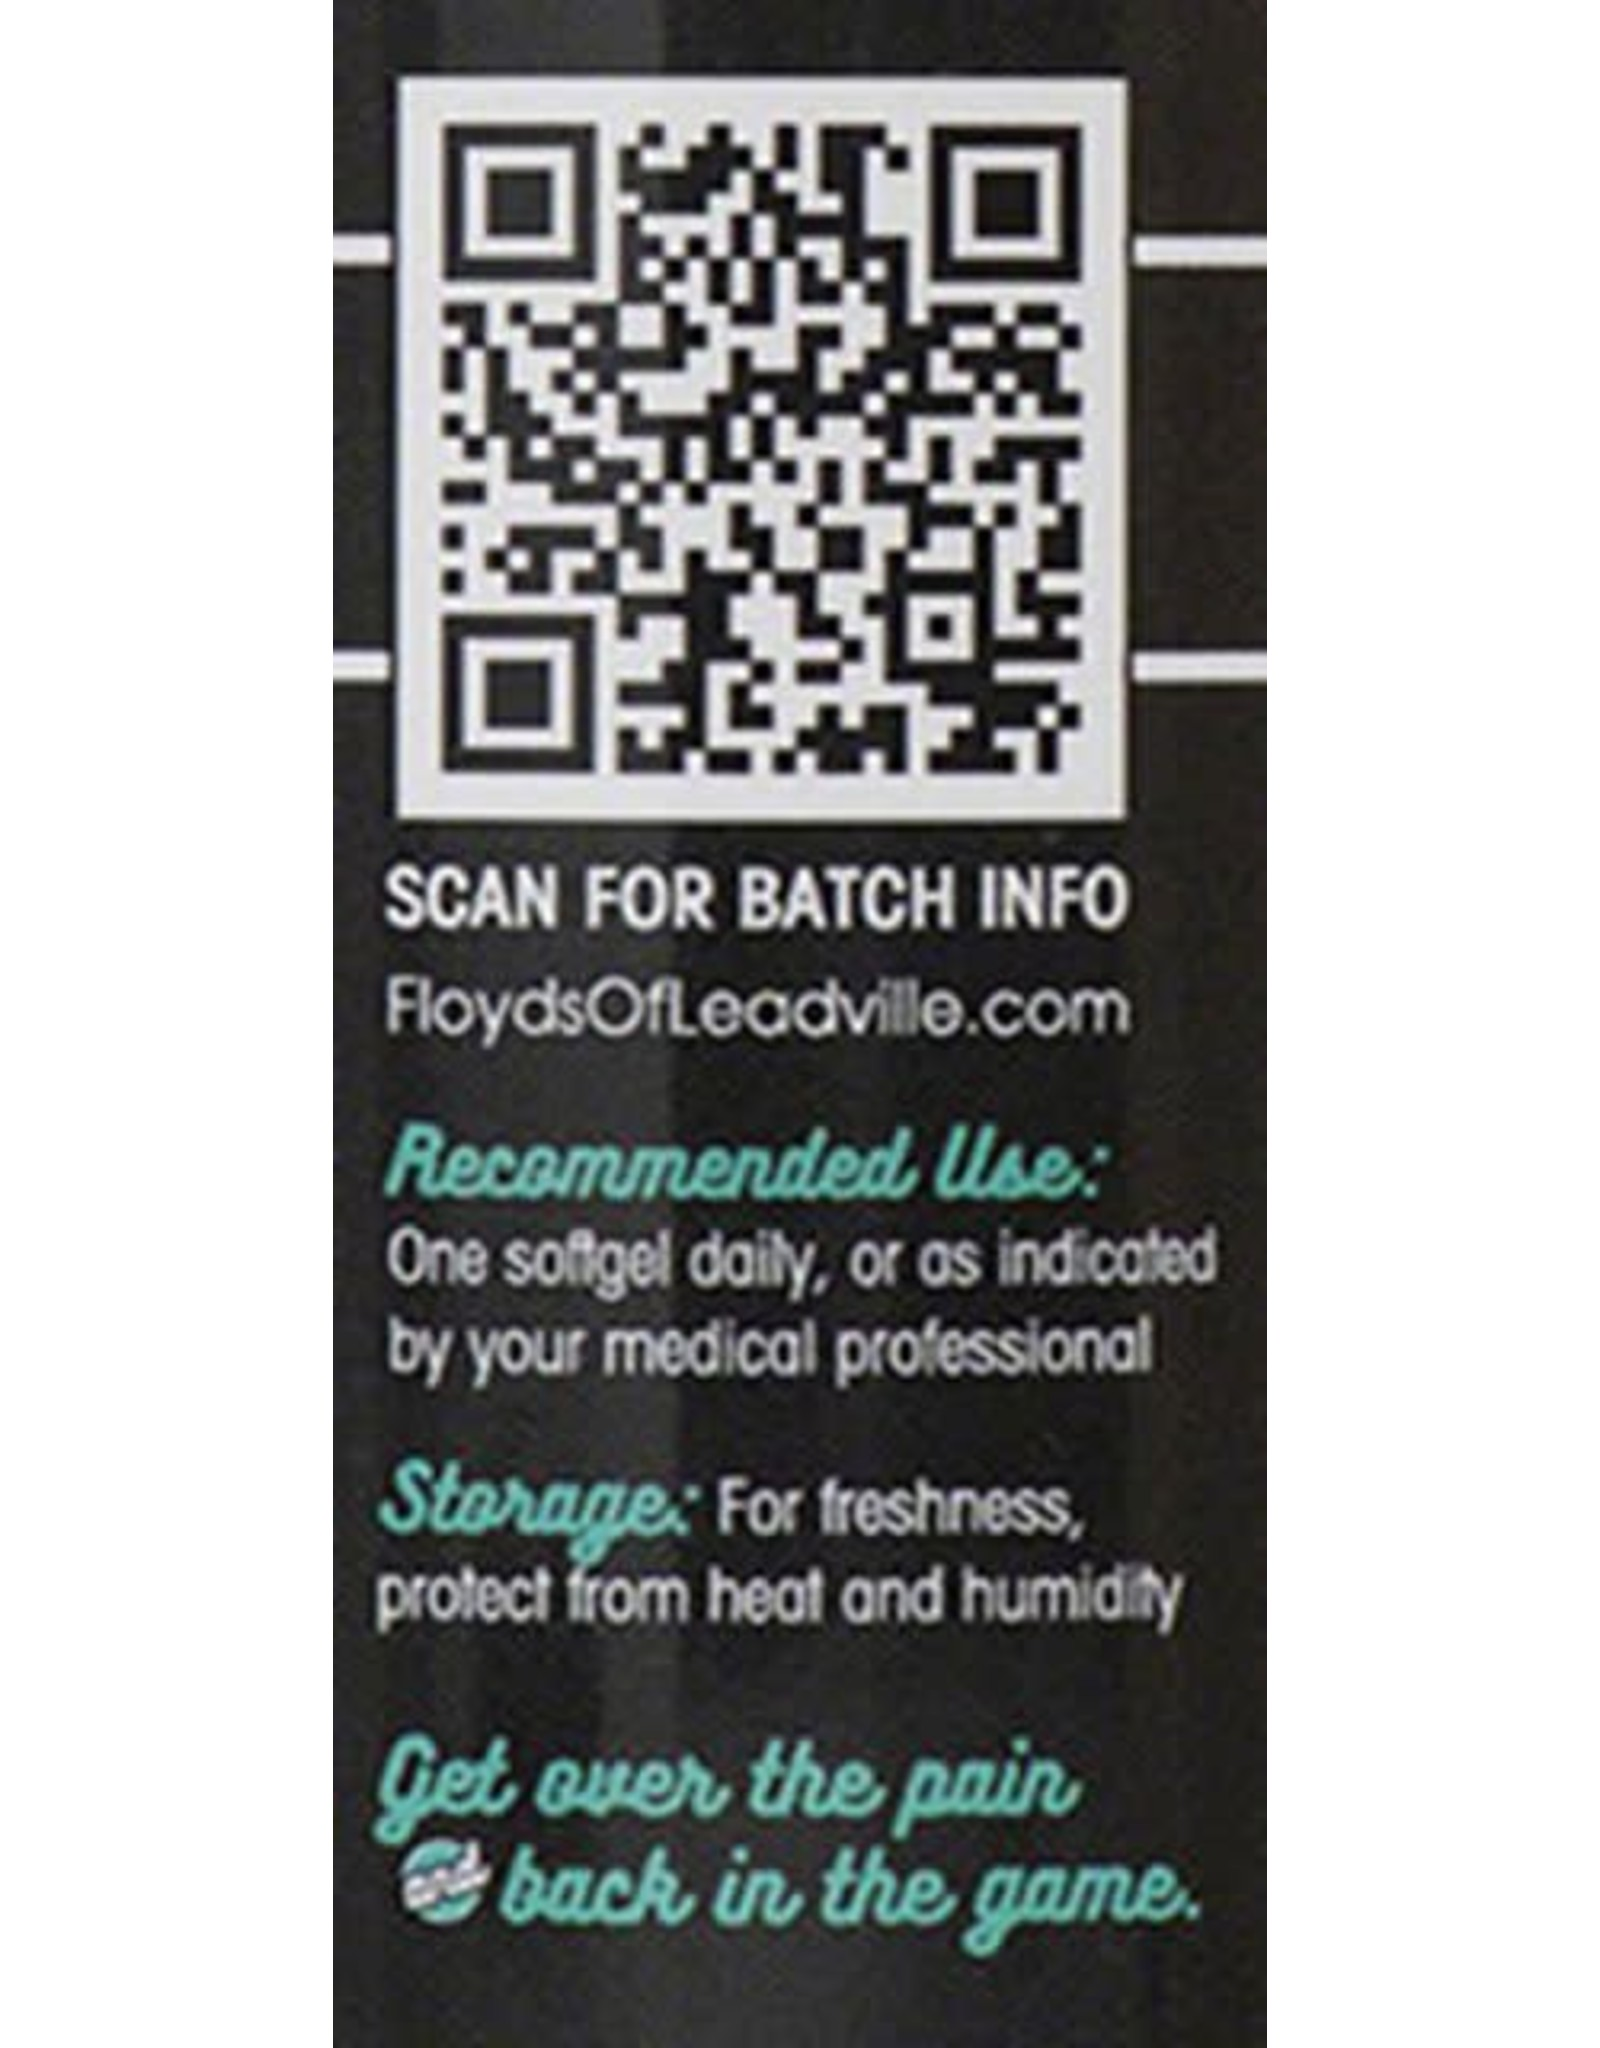 Floyd's of Leadville Floyd's of Leadville CBD Softgel: Full Spectrum, 50mg, Qty 30